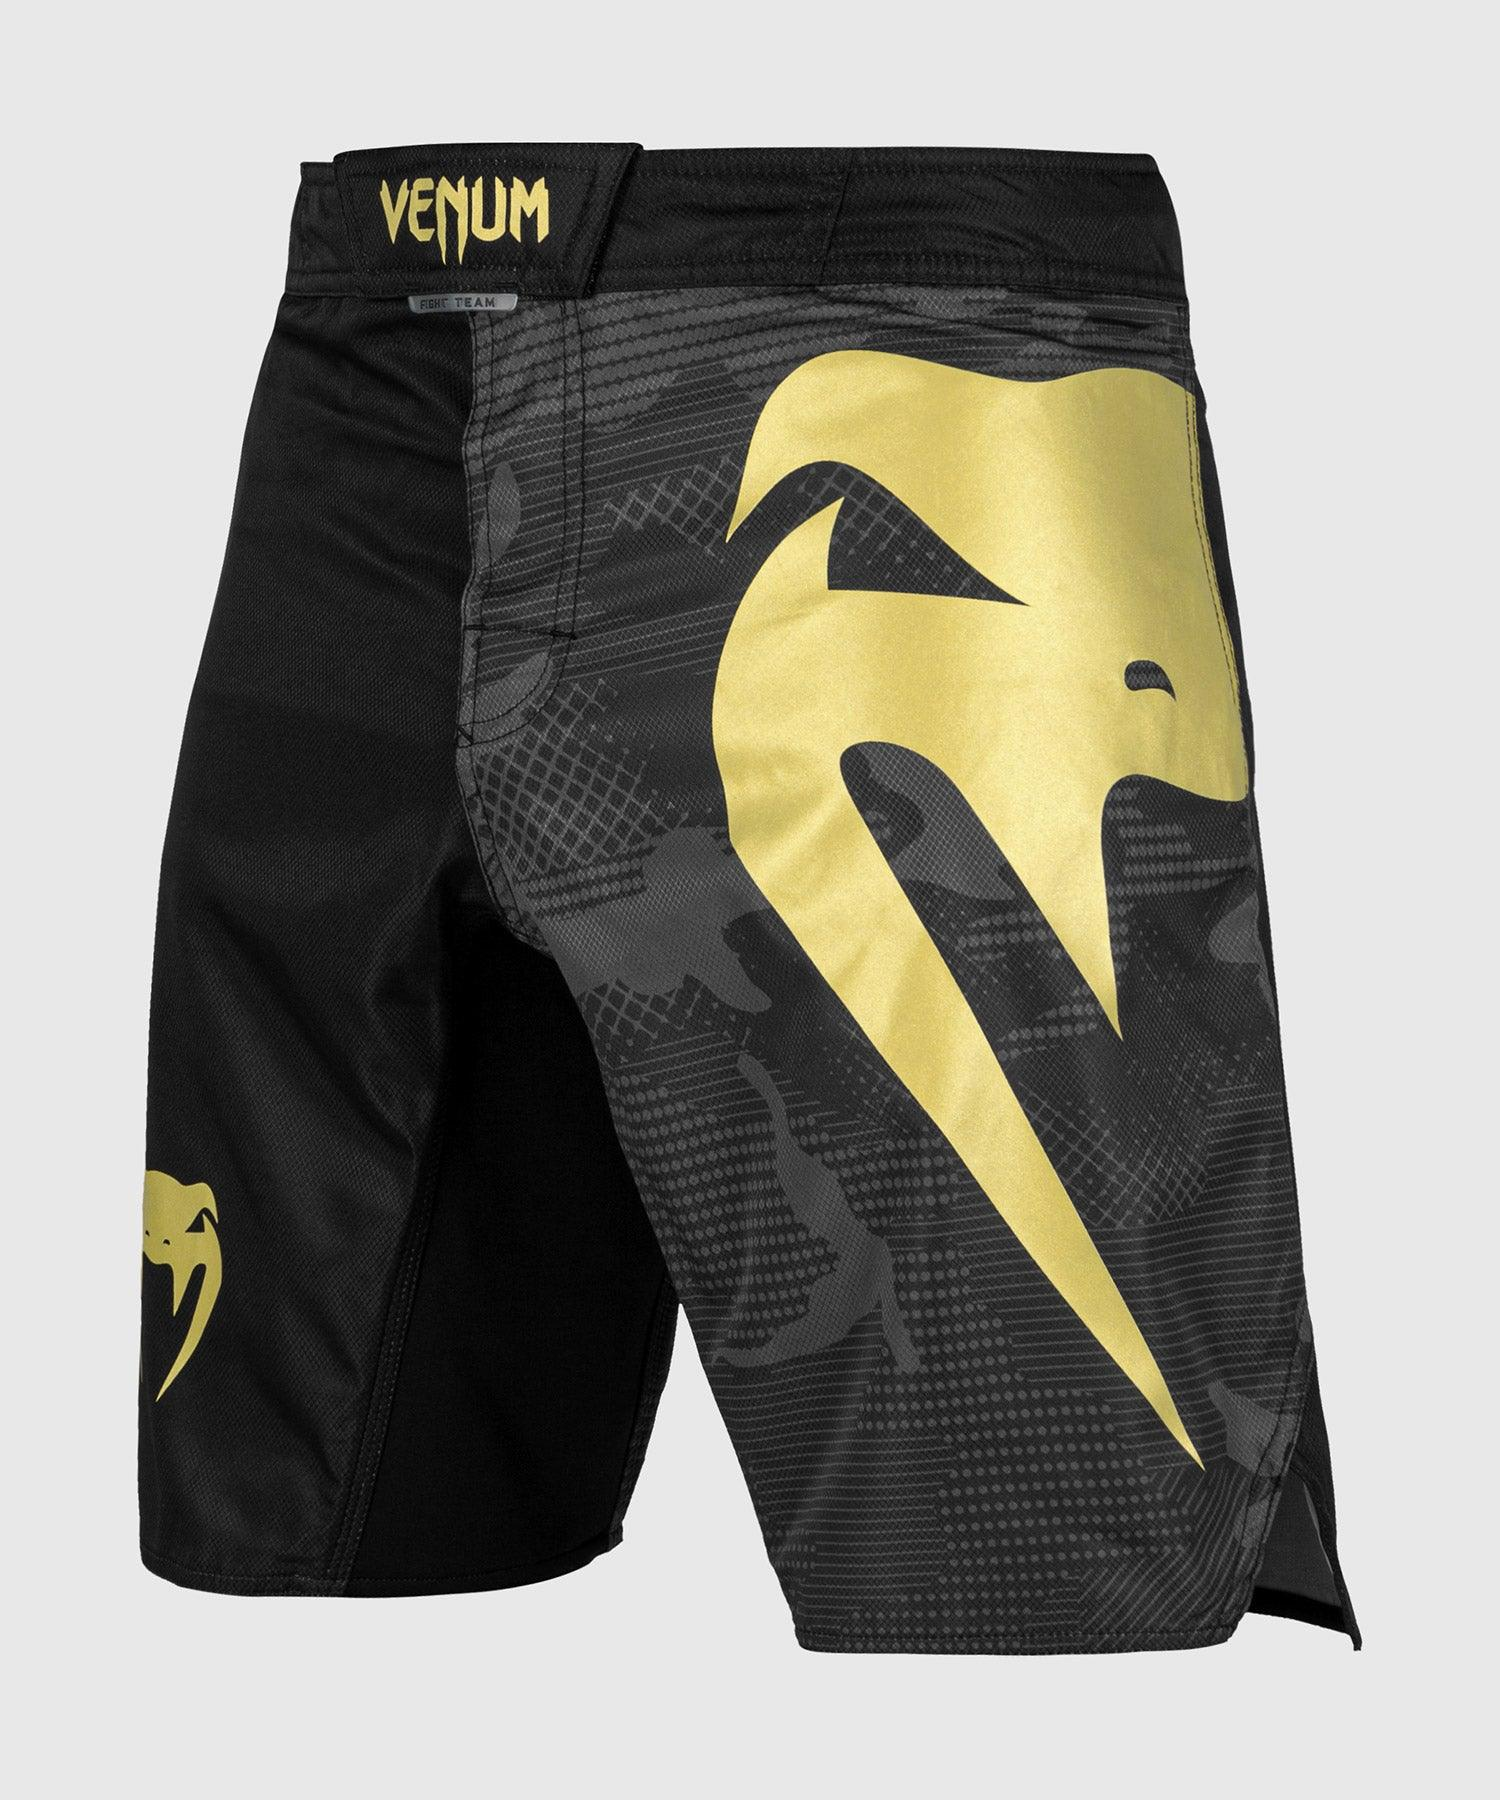 Venum Light 3.0 Fightshorts - Gold/Black picture 1